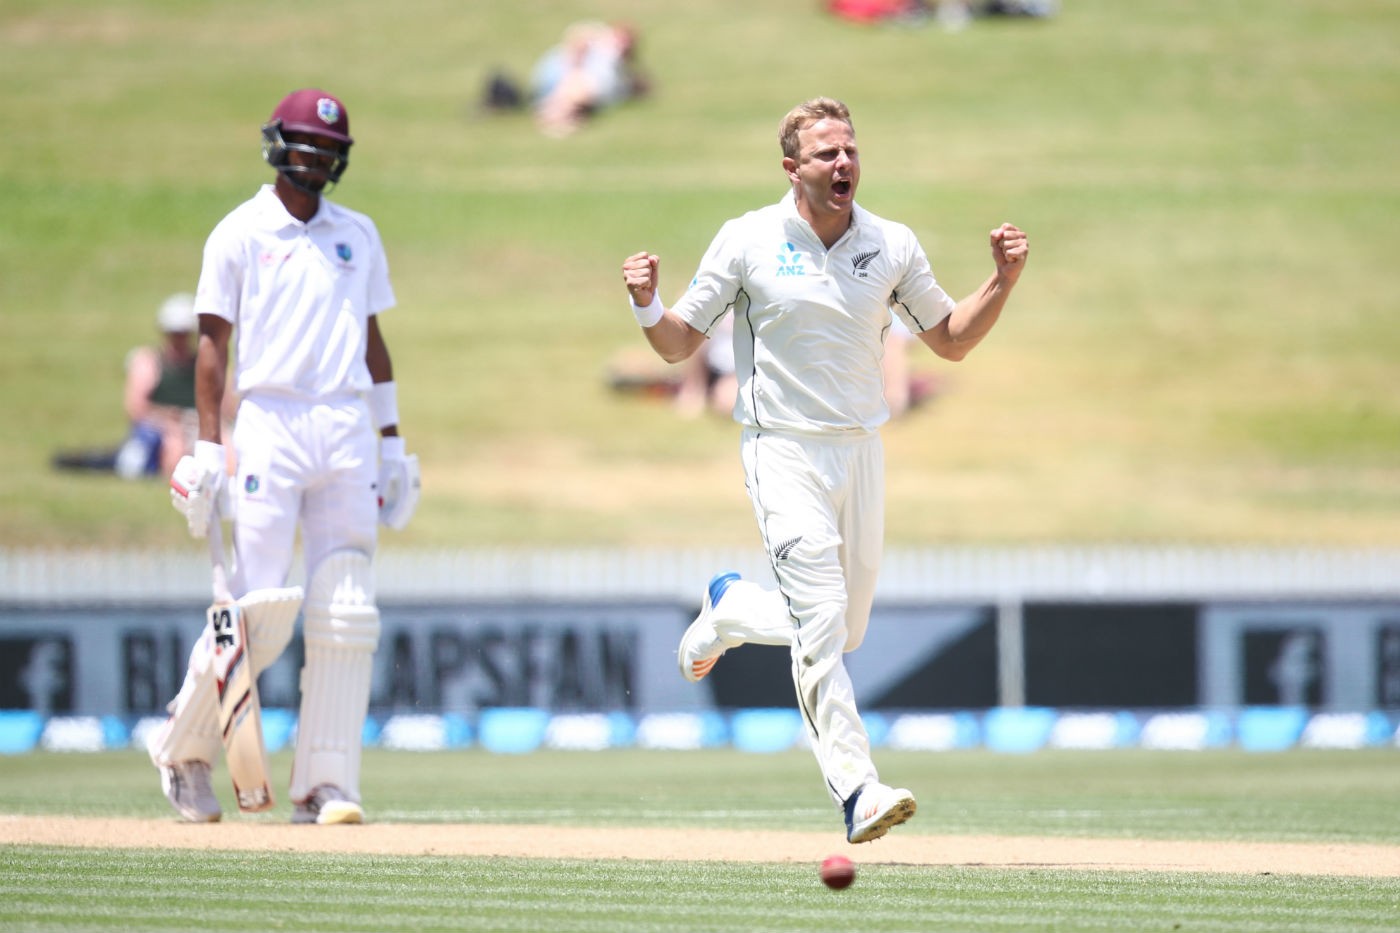 New Zealand vs West Indies 2nd Test Day 4